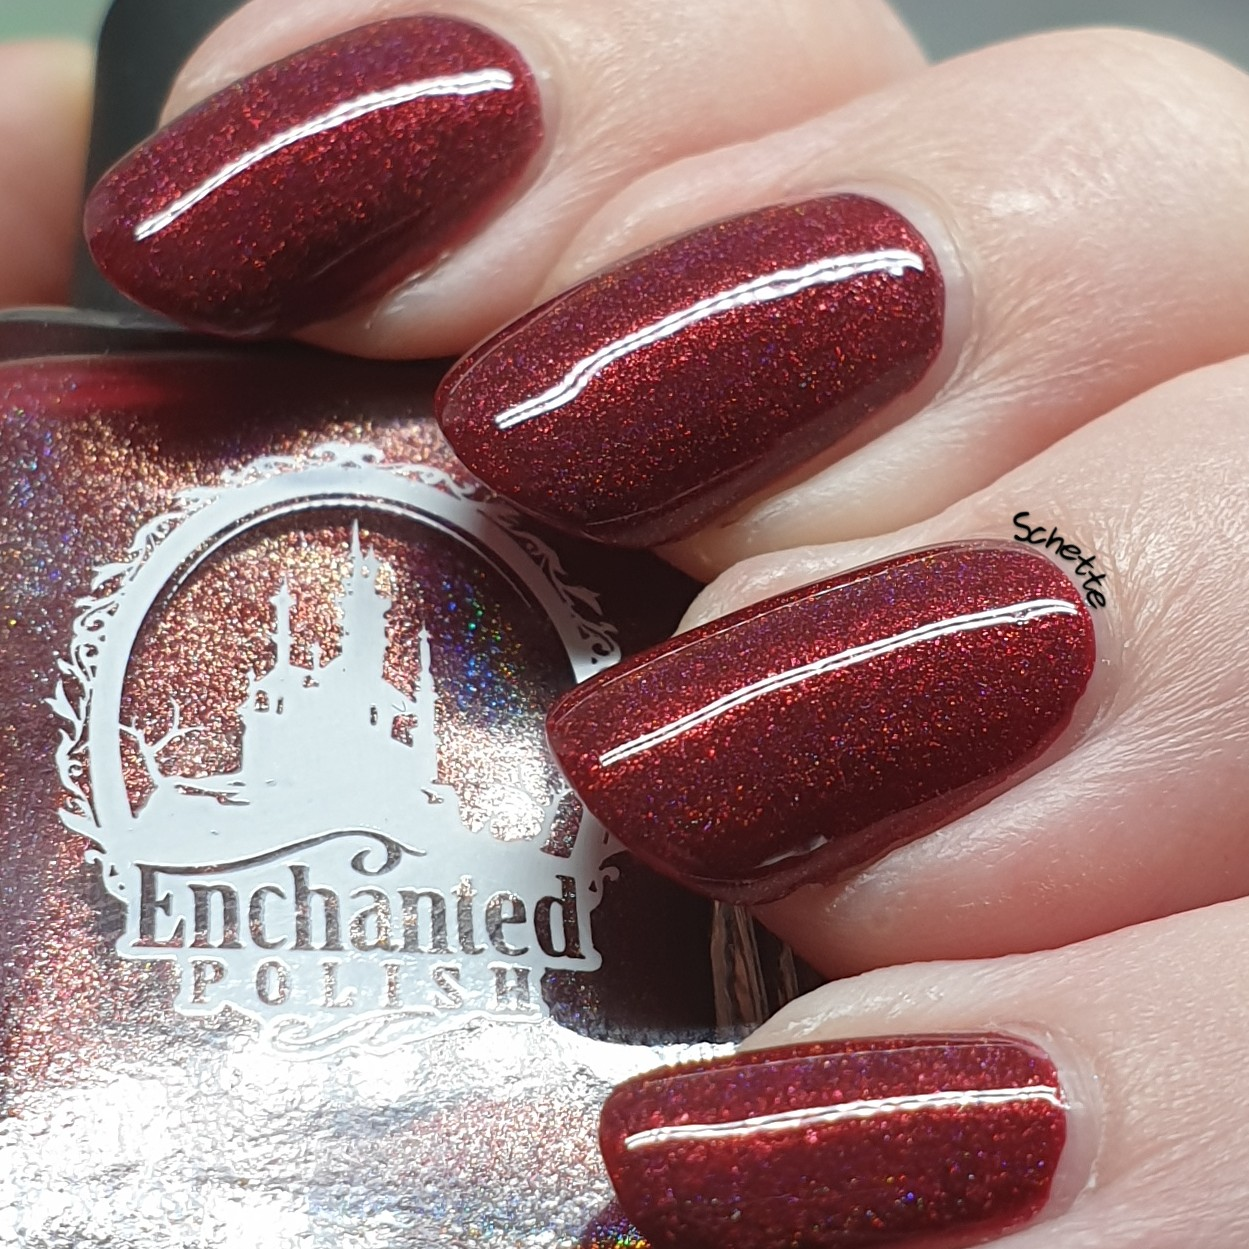 Enchanted Polish - Cherries Jubilee